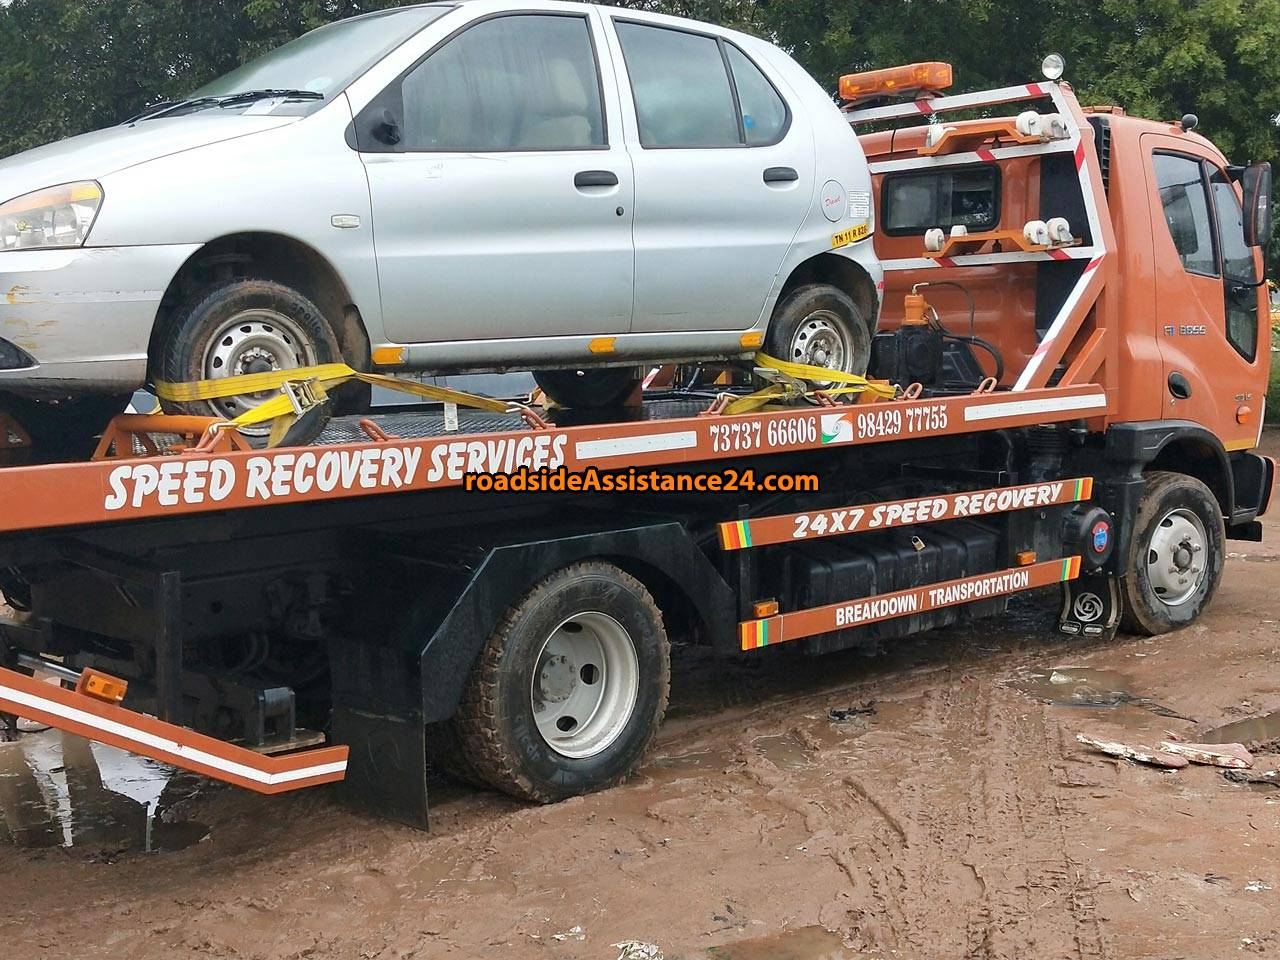 Speed Recovery Services